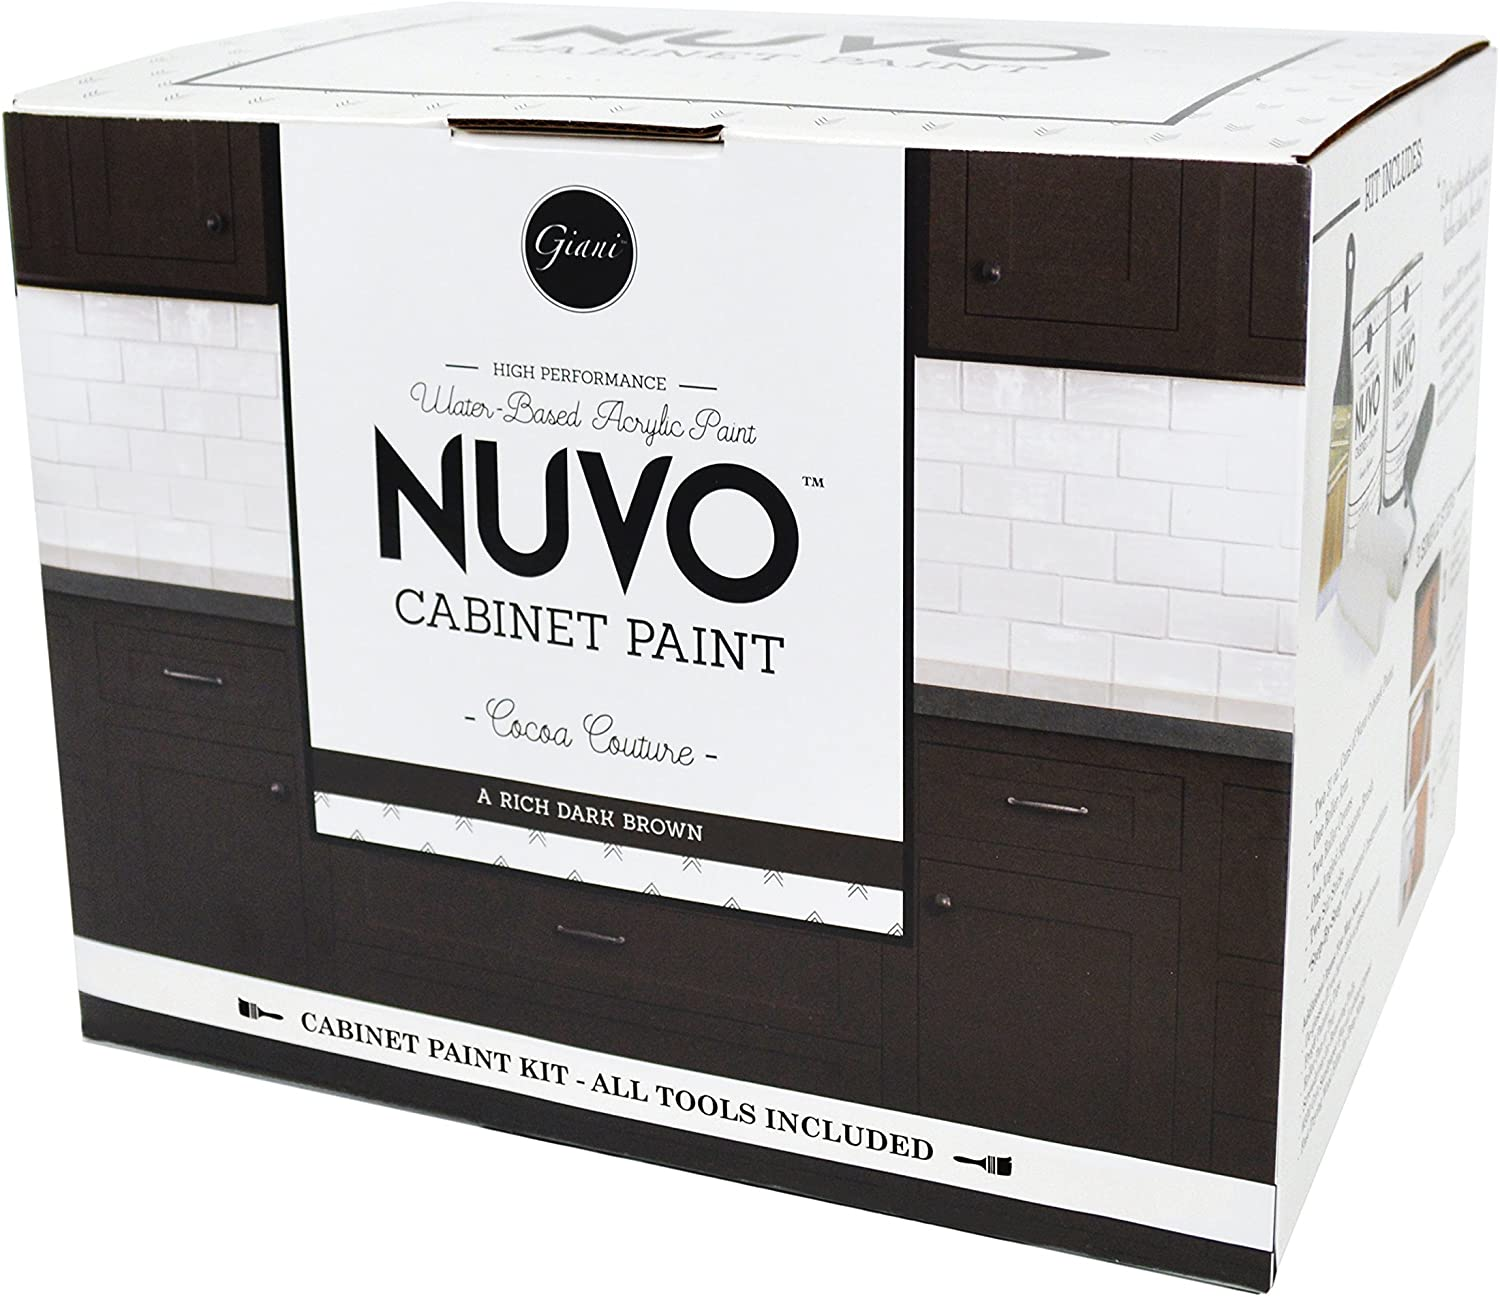 Nuvo Cocoa Couture Cabinet Paint Kit Brown Closet Storage And